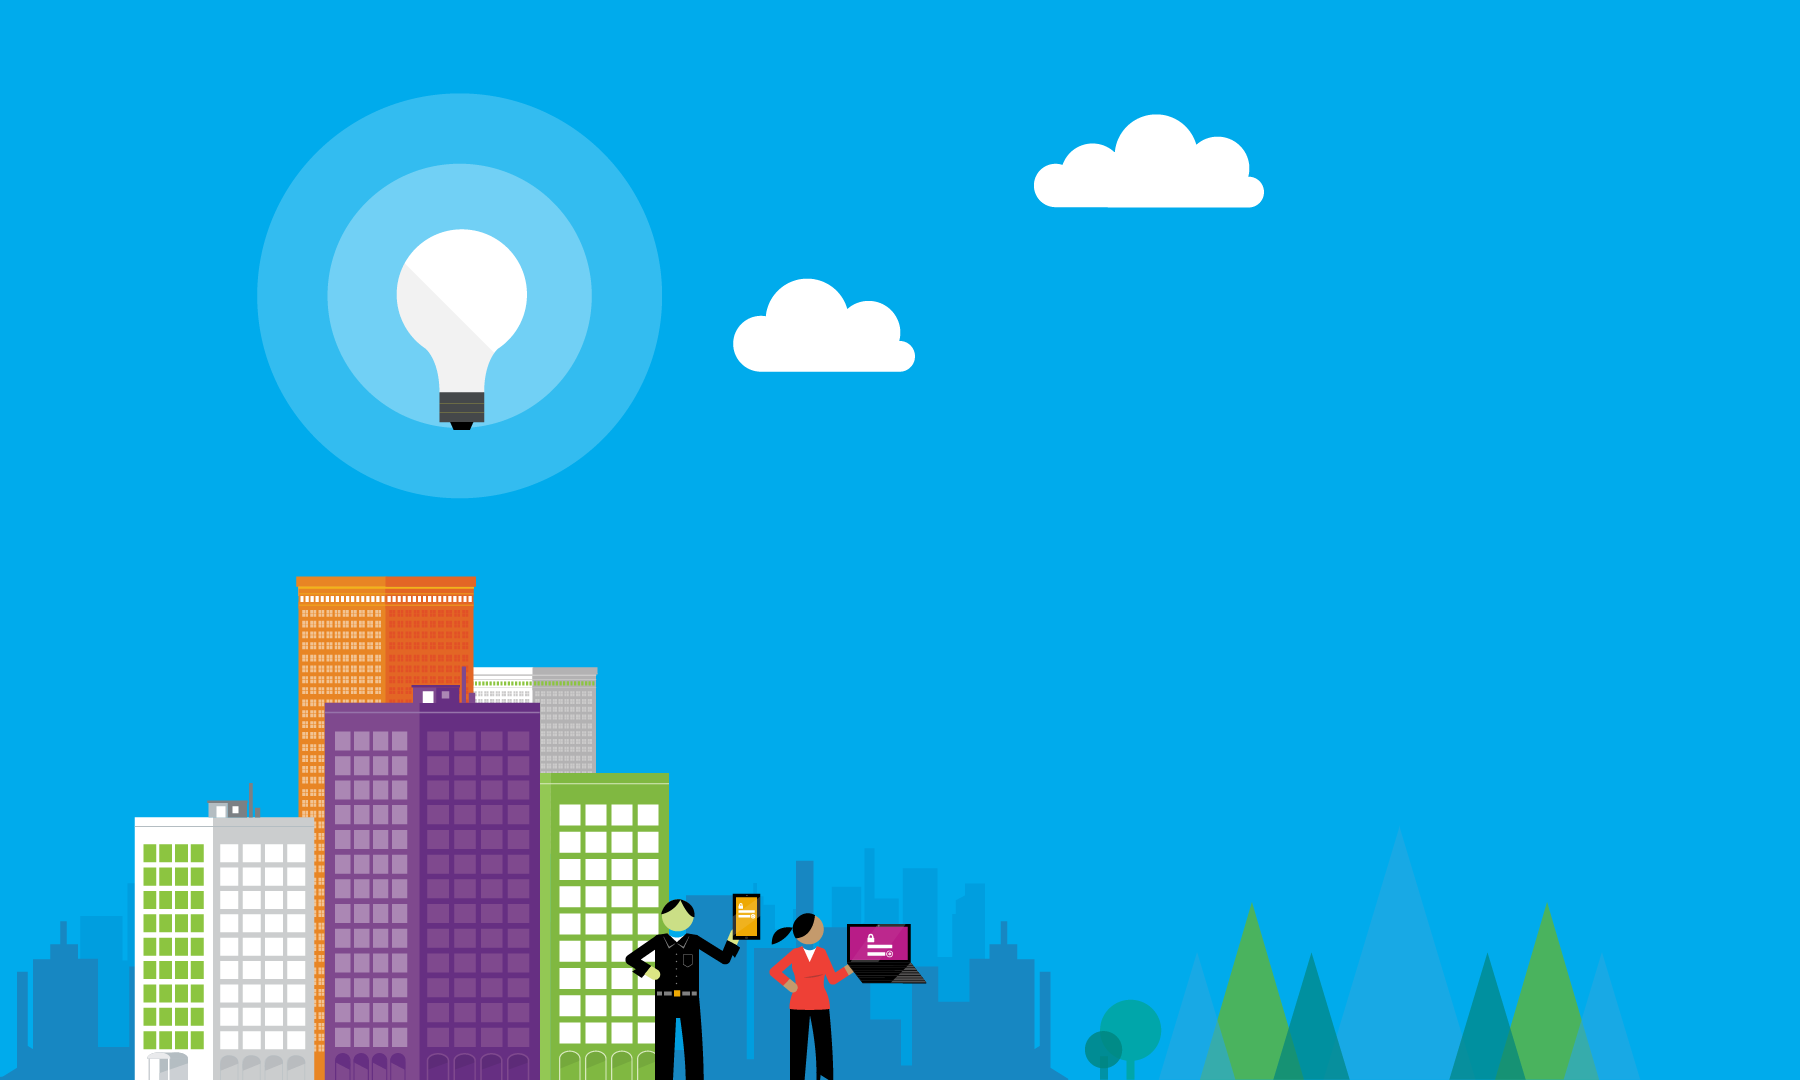 We've partnered with Microsoft as a Cloud Solution Provider